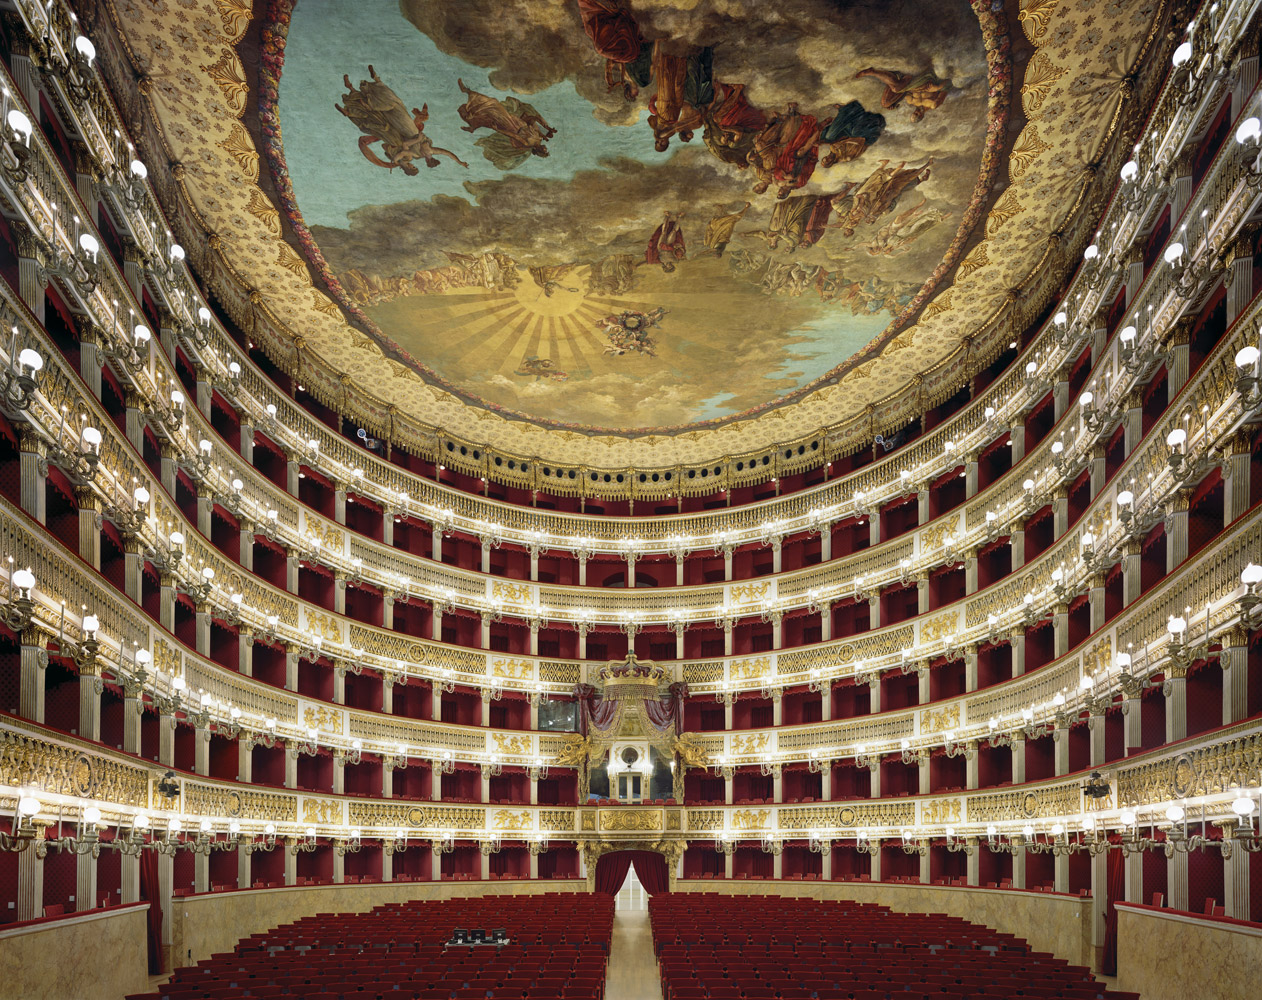 Teatro di San Carlo, Naples, Italy, 2009, by David Leventi. Fujicolor Crystal Archive print on Dibond of the interior of the San Carlo Theatre.